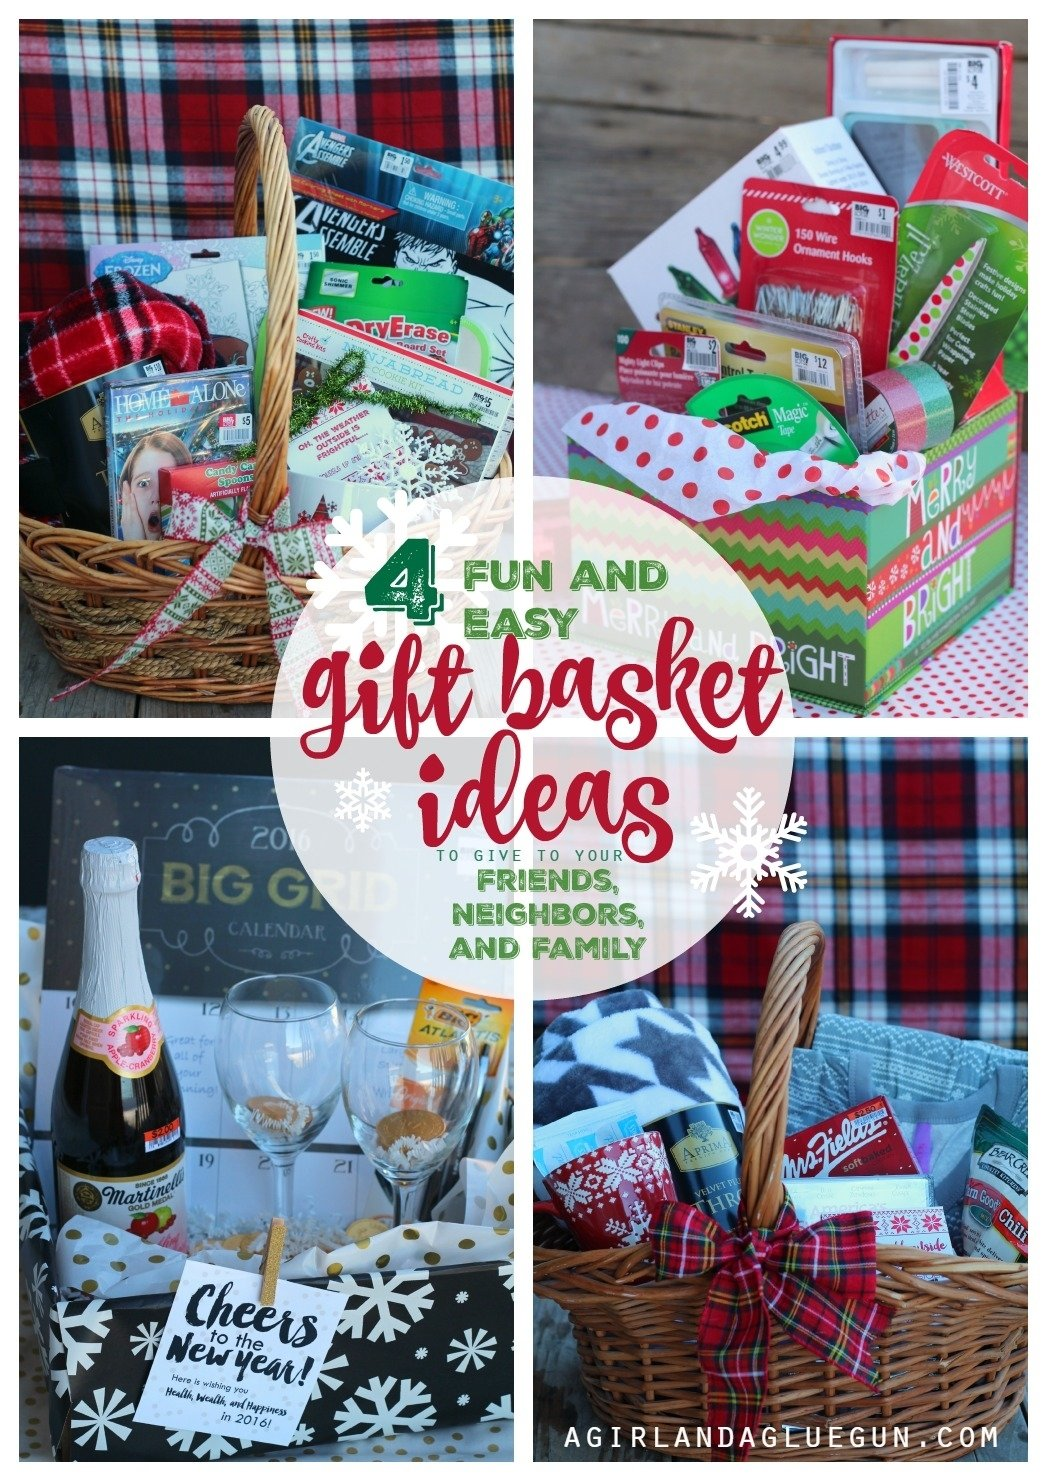 10 Great Family Gift Basket Ideas For Christmas 4 fun and easy gift basket ideas for christmas a girl and a glue gun 3 2020